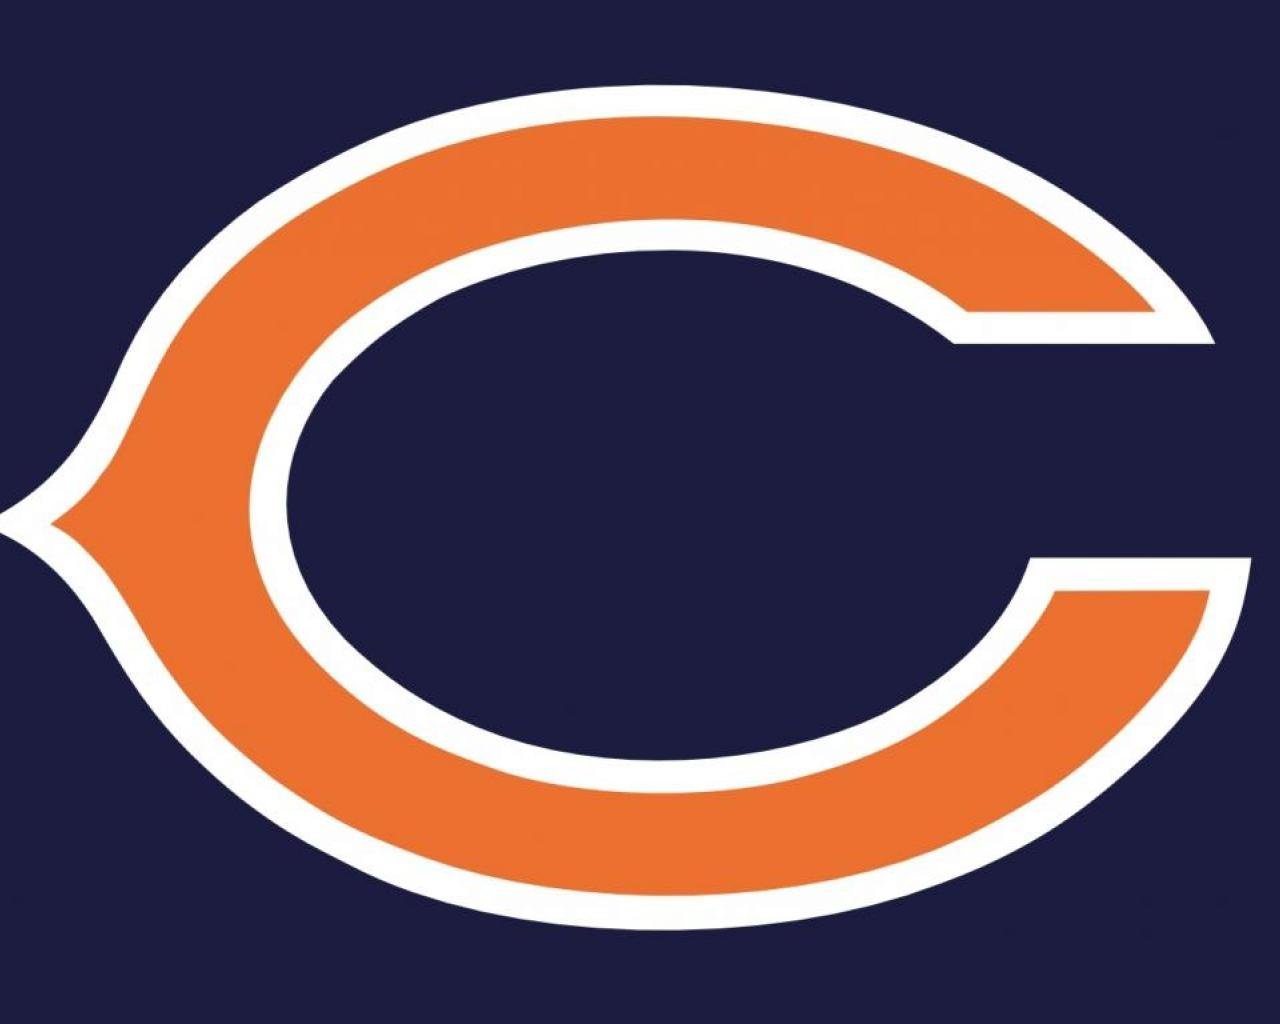 chicago bears logo wallpaper   80523   HQ Desktop Wallpapers 1280x1024